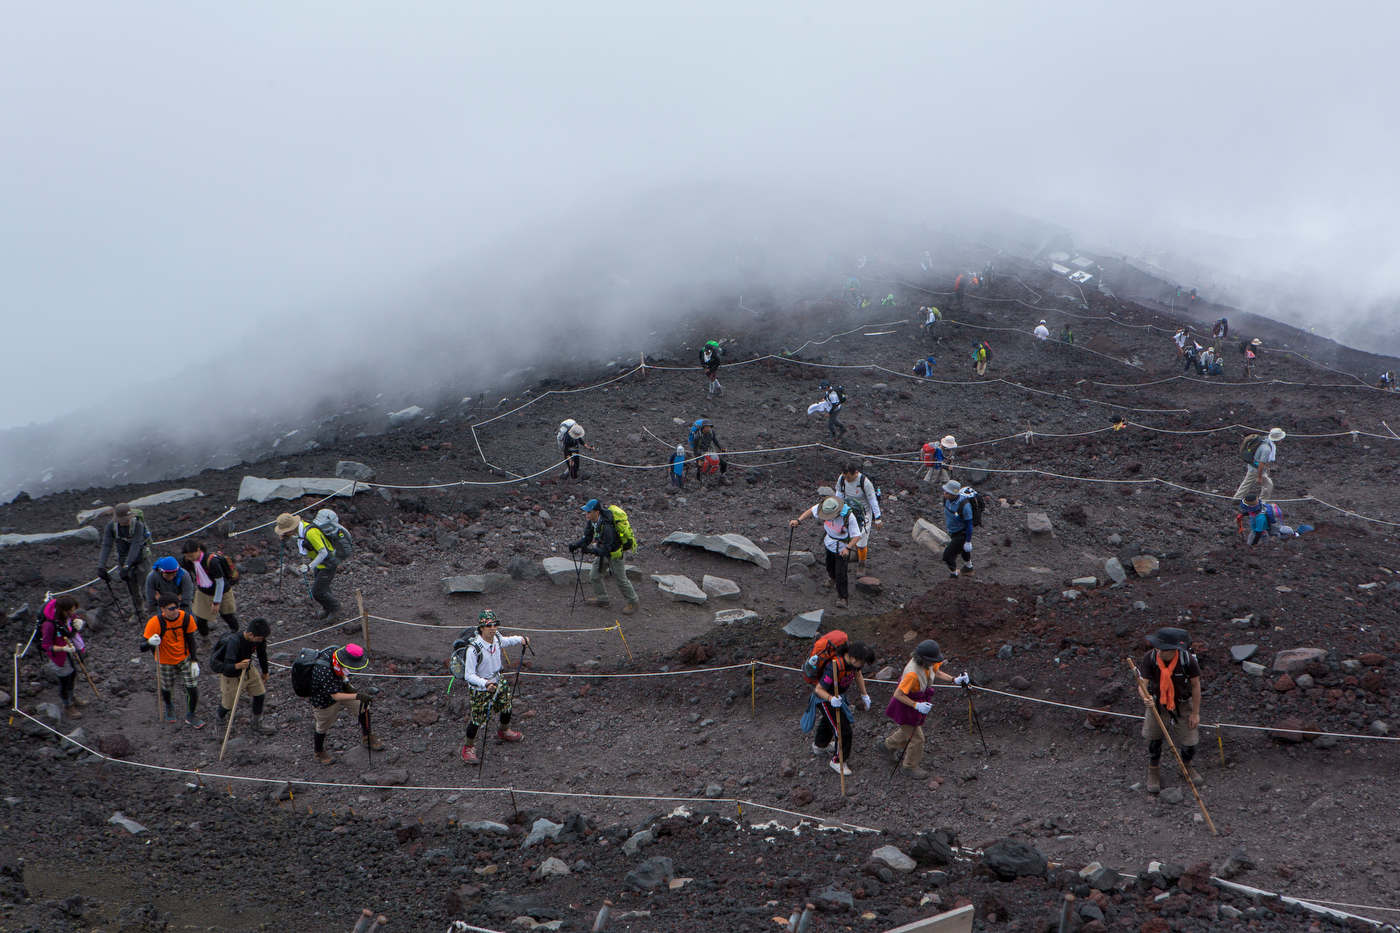 Surrounded by rolling clouds, hikers walk up on the Yoshida trail, a Mount Fuji's most popular route.